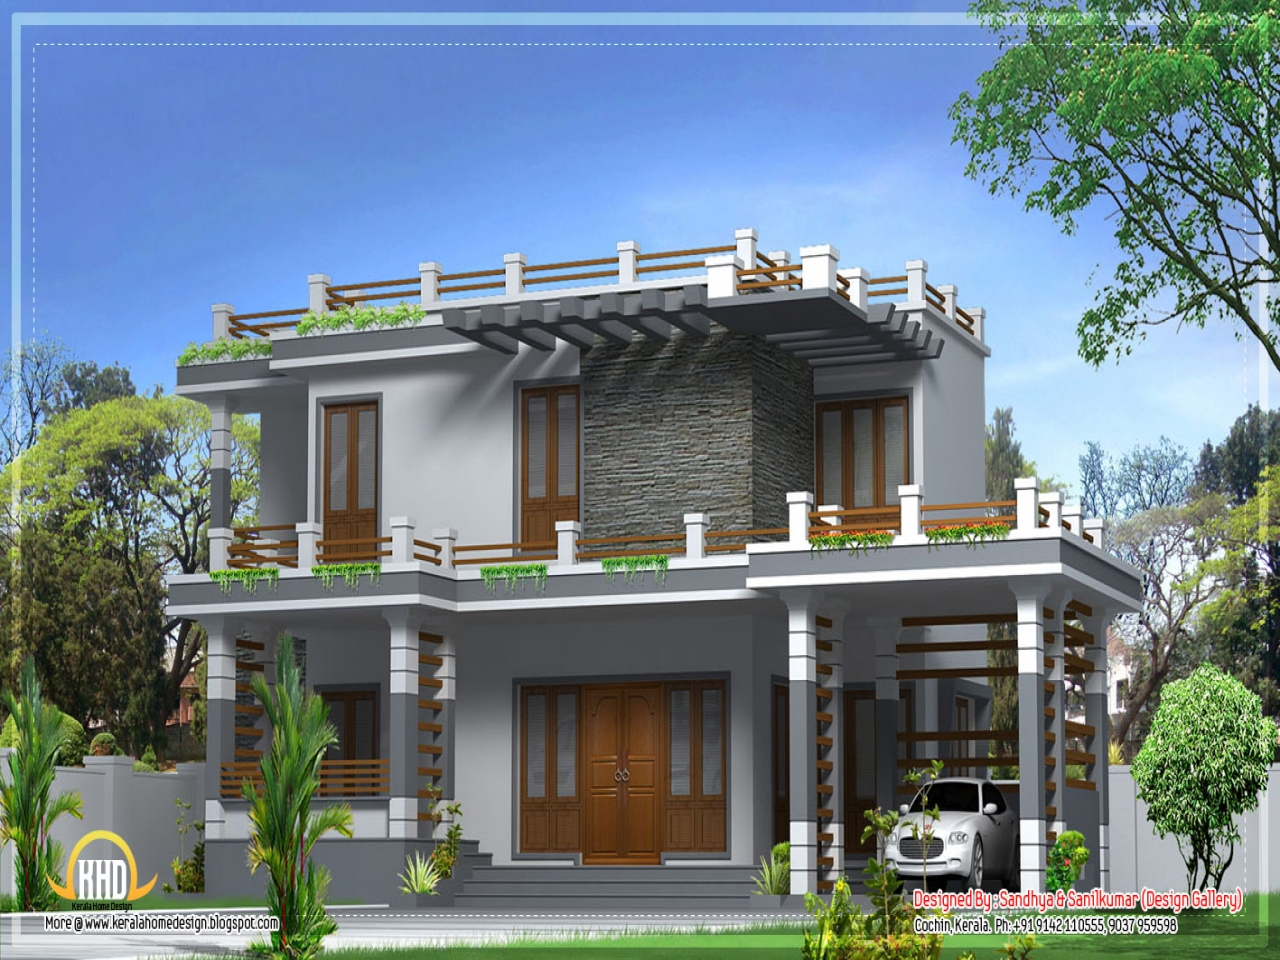 Kerala modern house design traditional kerala house for Kerala home designs contemporary